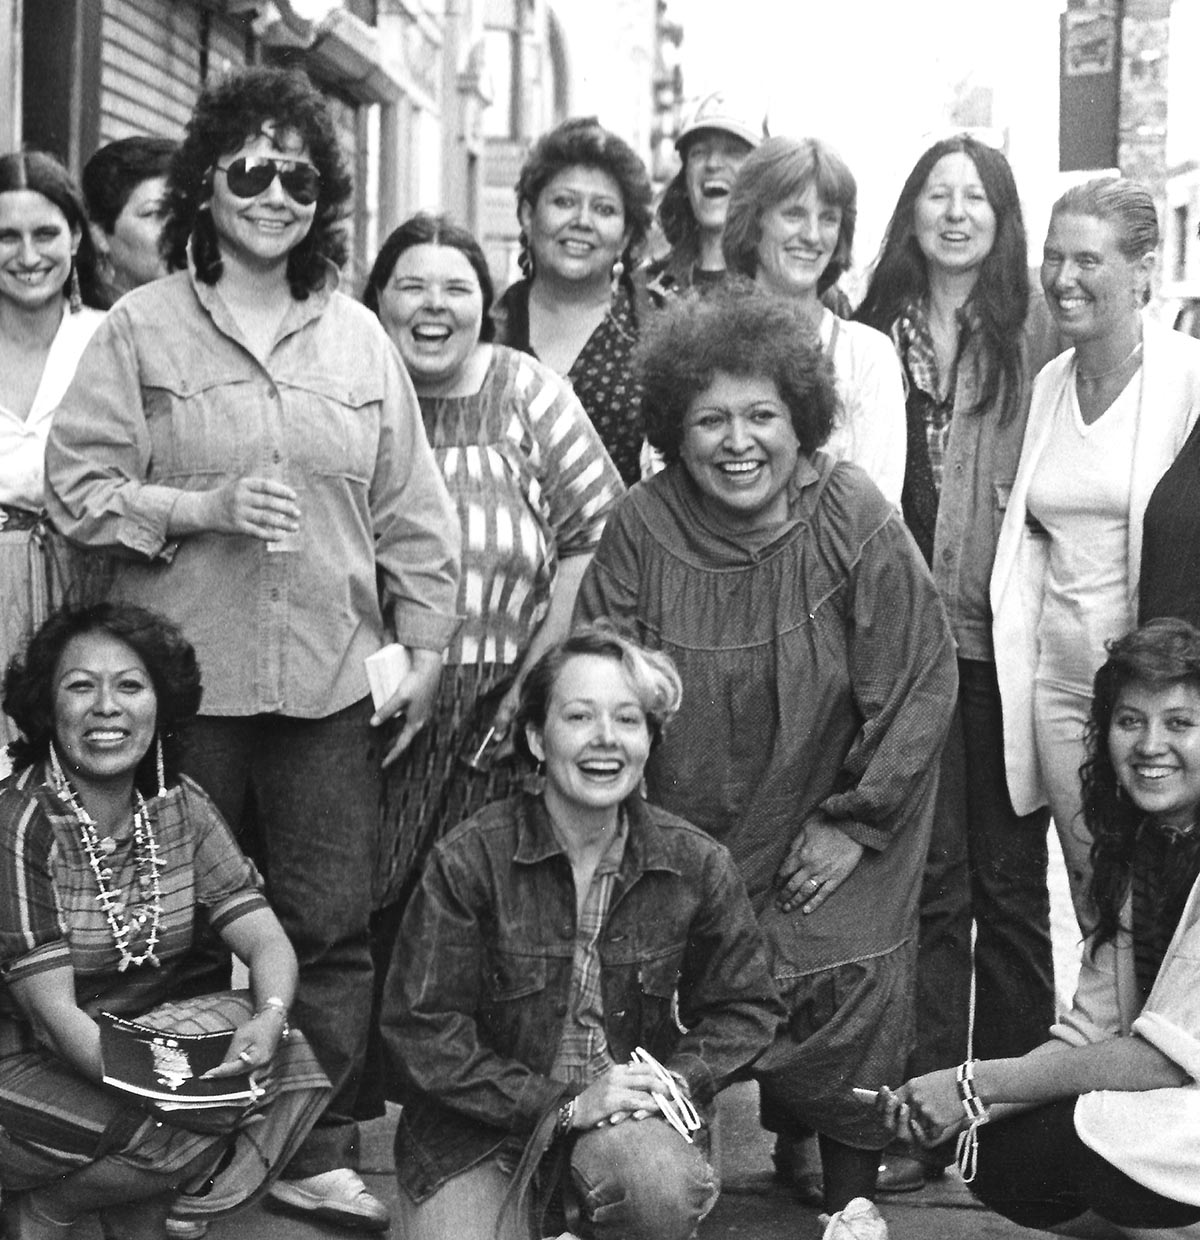 Artistes de l'exposition, Women of Sweetgrass, Cedar and Sage, amis et membres de la communauté devant la galerie American Indian Community House, 1985. Photo de Jesse Cooday.